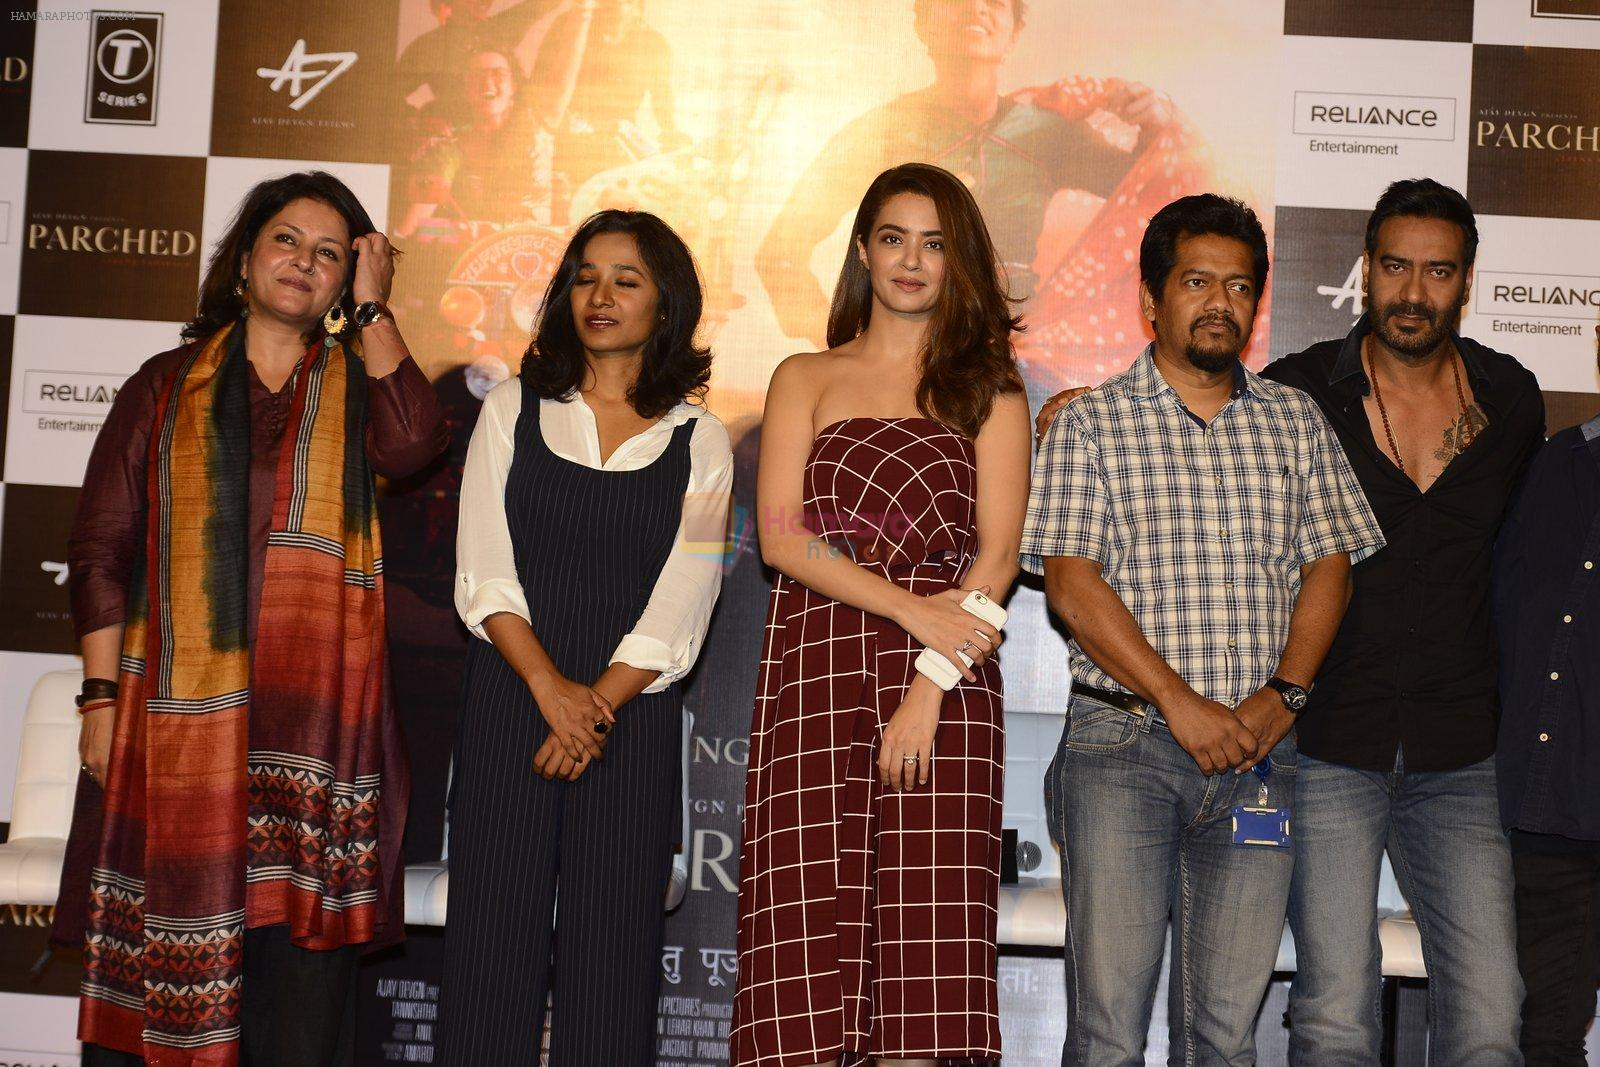 Ajay Devgan, Tannishtha Chatterjee, Surveen Chawla at Ajay devgan's parched press meet